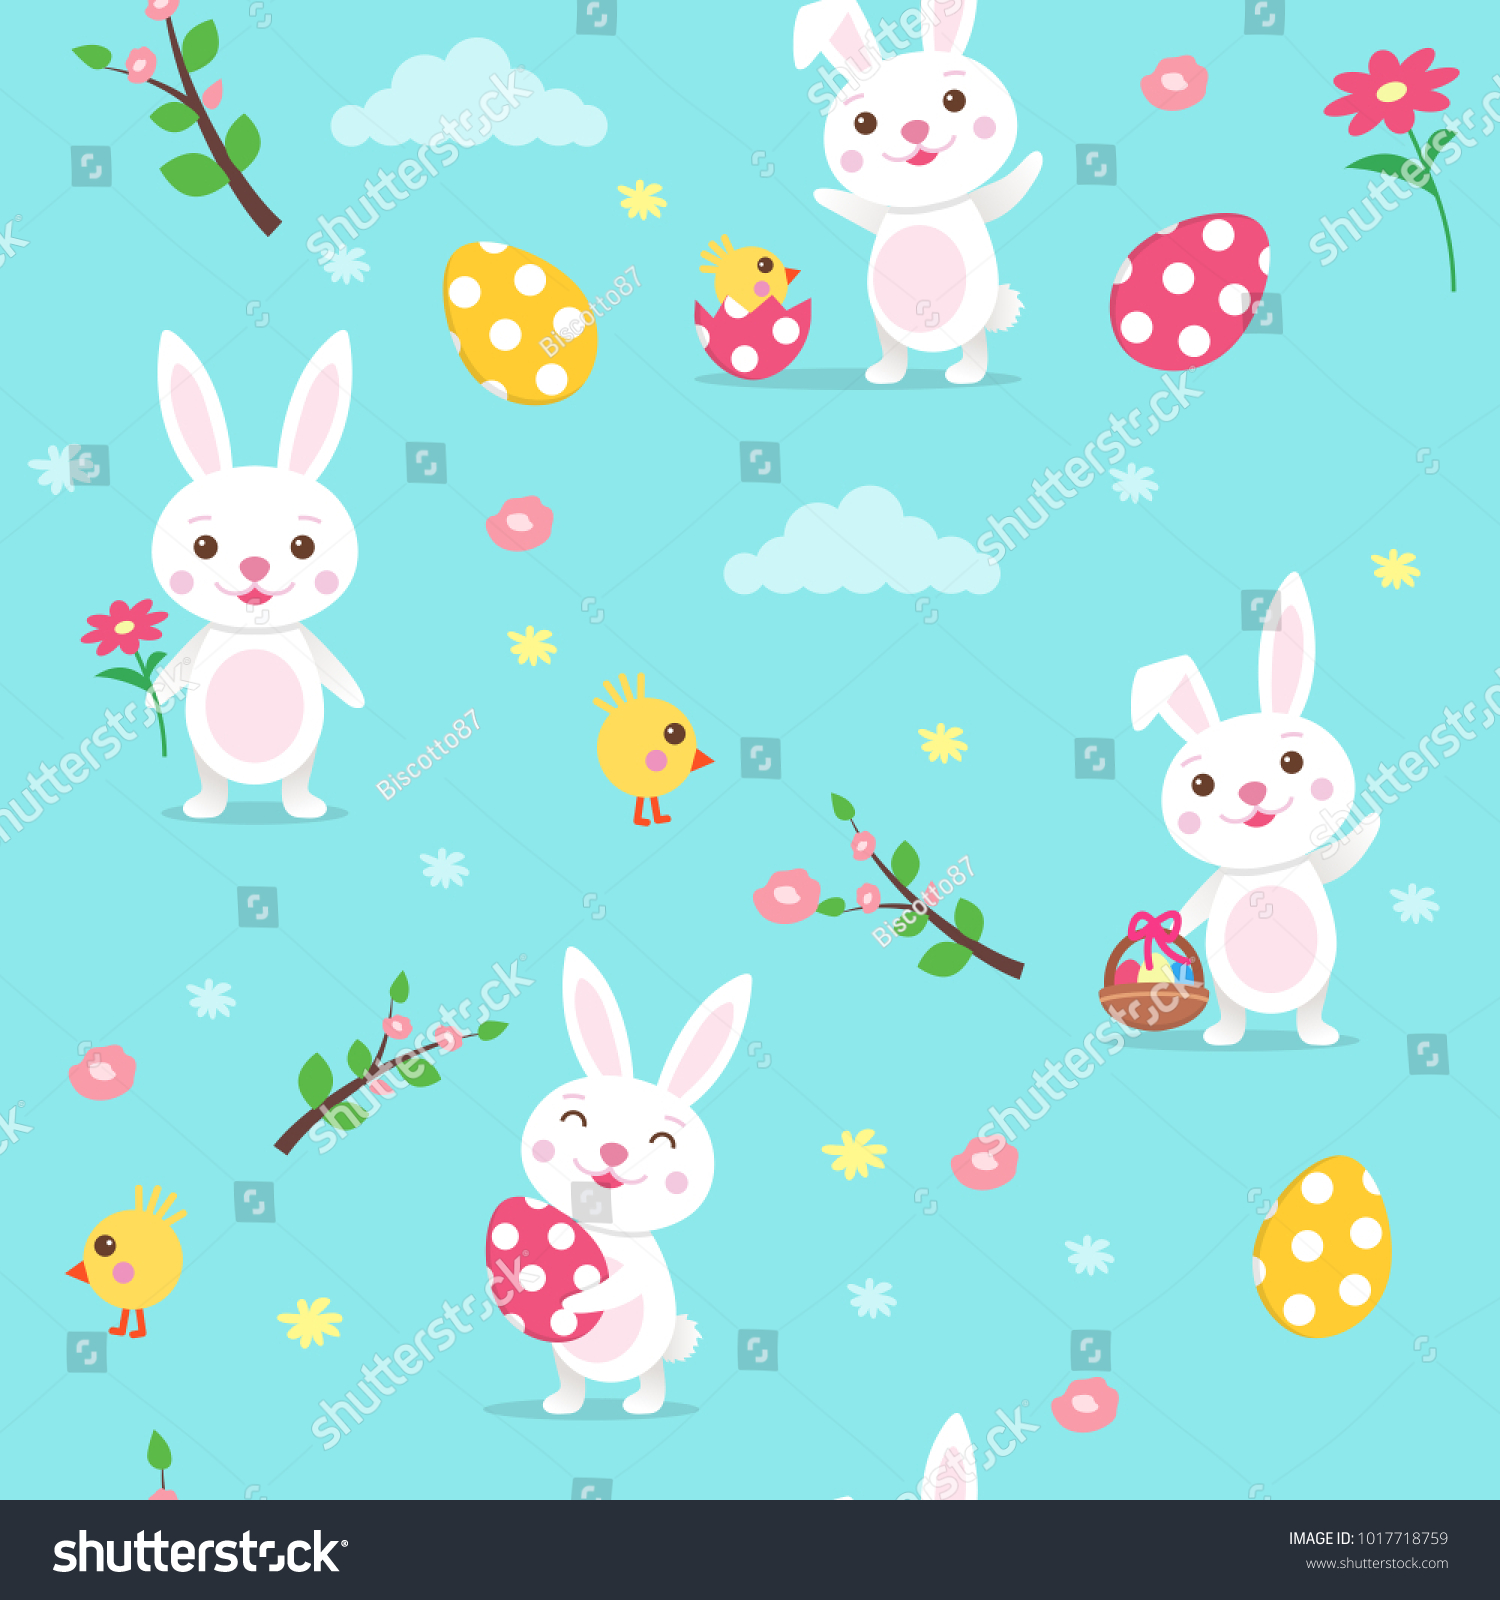 Happy Easter Seamless Vector Pattern With Cute Cartoon Easter Bunny